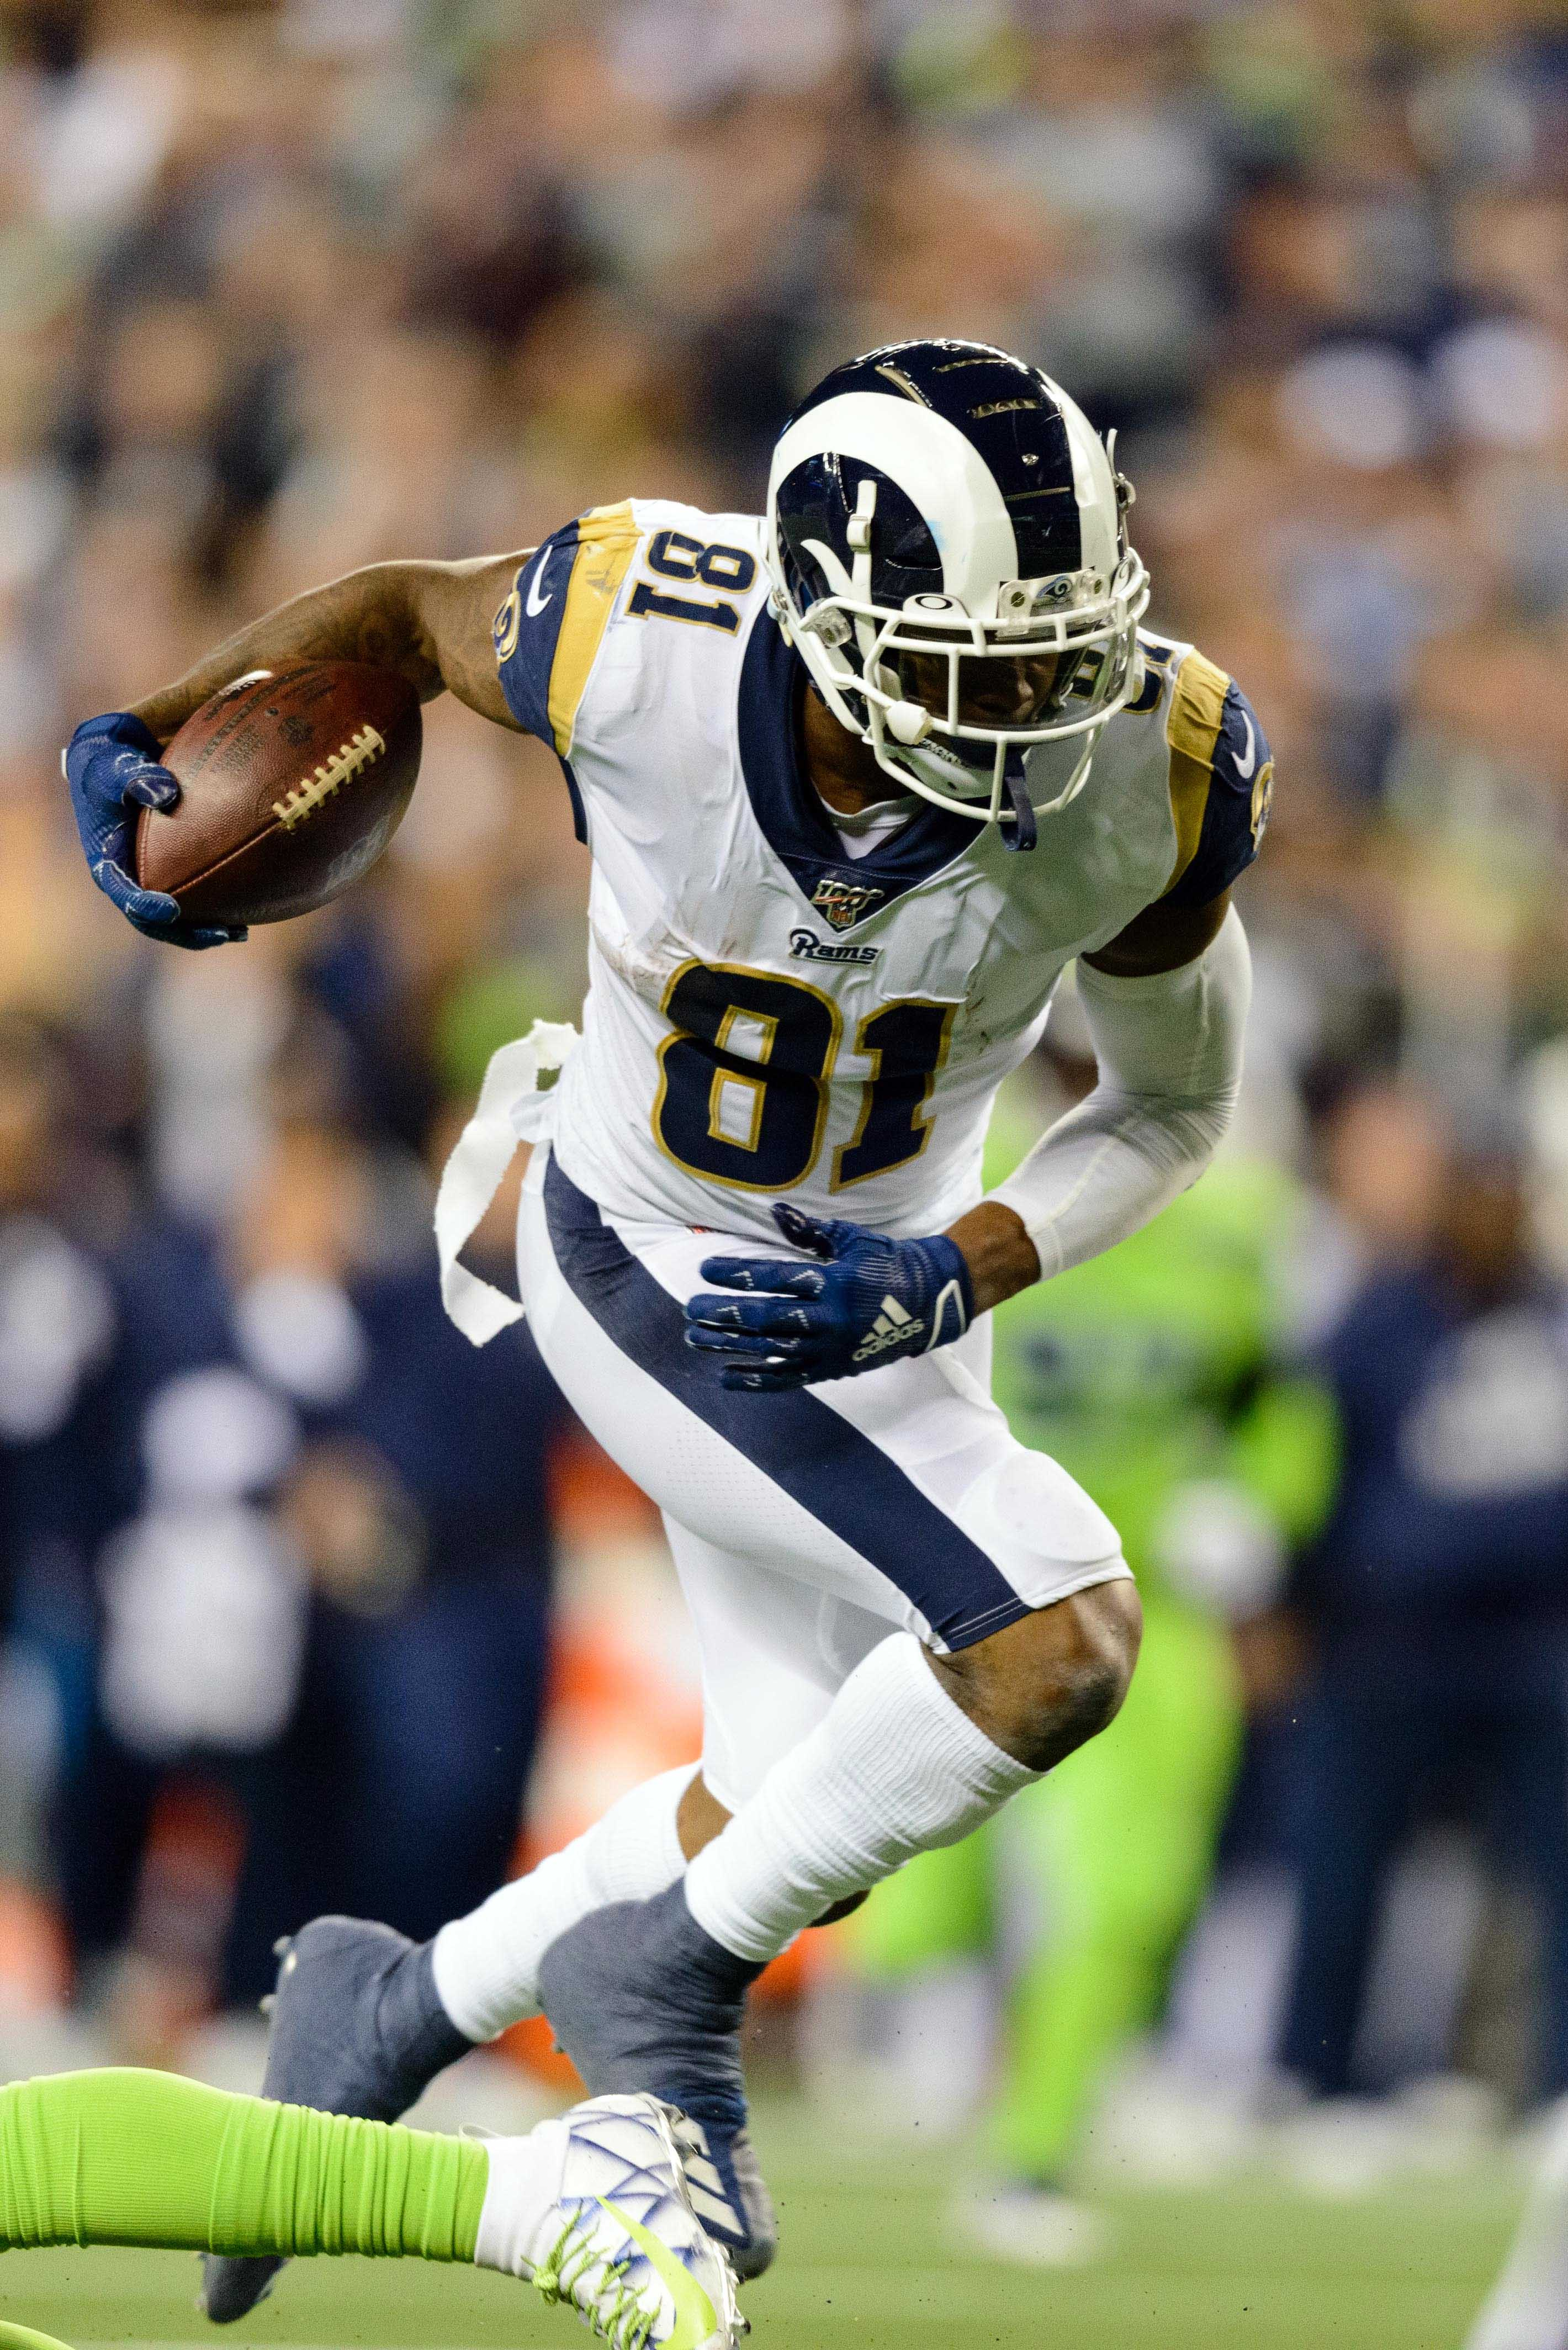 Los Angeles Rams TE Gerald Everett runs after a catch against the Seattle Seahawks in Week 5, Oct. 3, 2019.